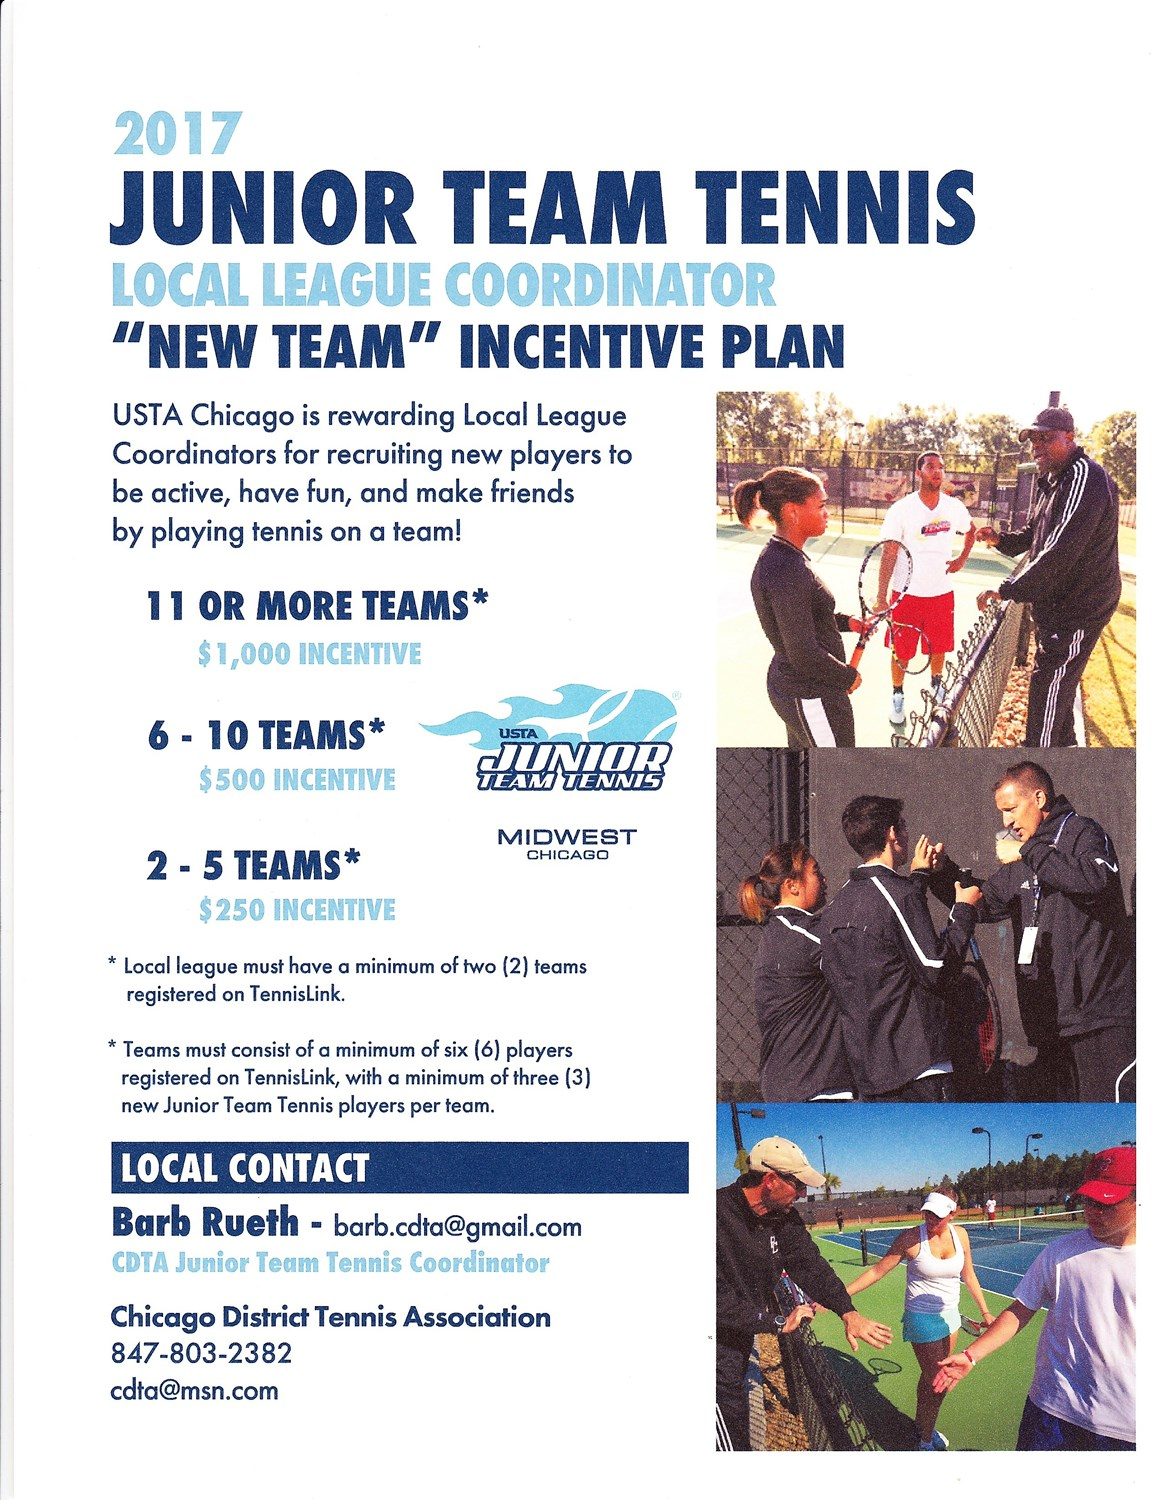 JTT_local_League_coordinator_incentive8-14-17